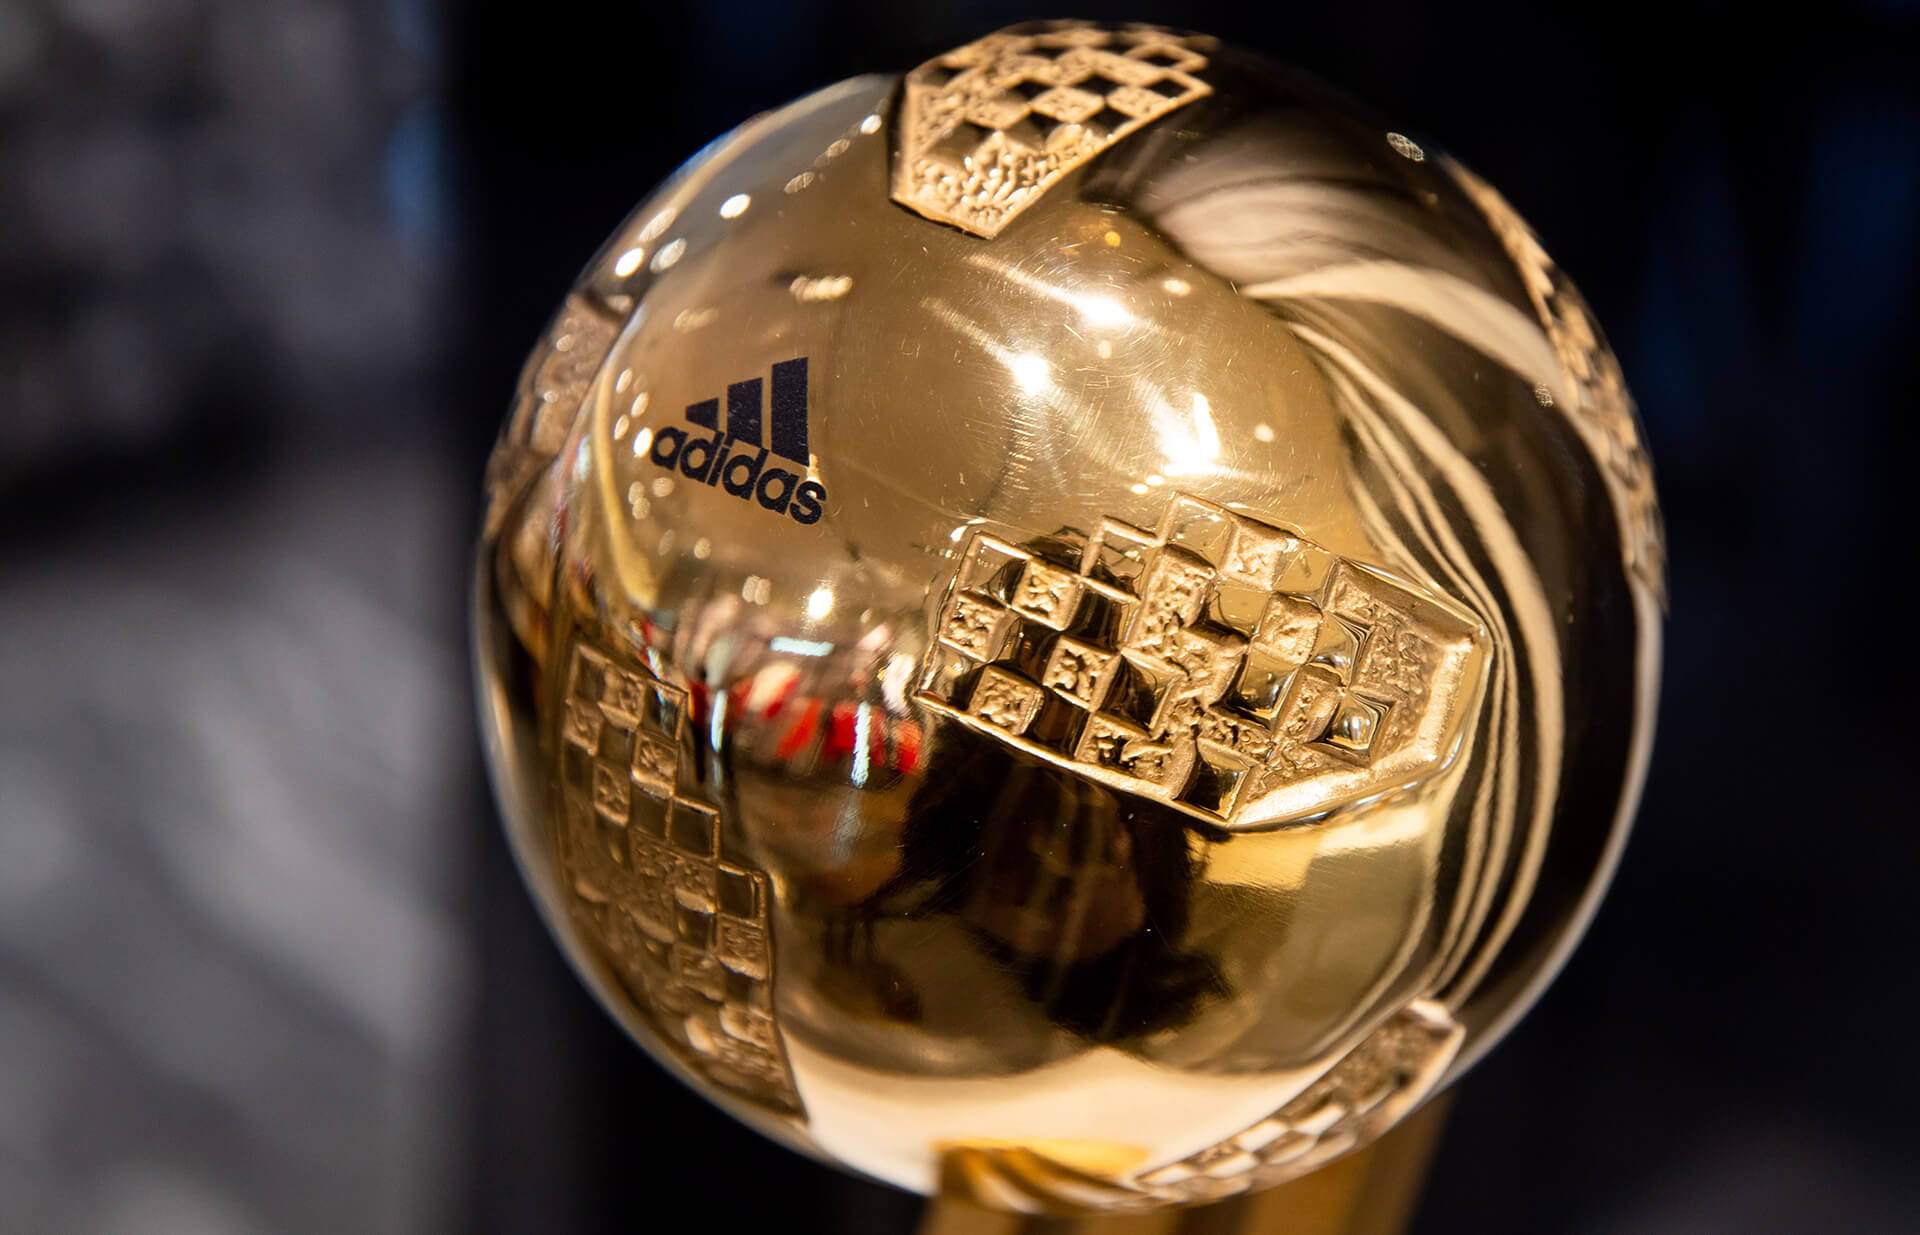 Glove Trophies 2018 Boot Adidas Reveal amp; Golden Ball Cup World 6H8gS8Wvz